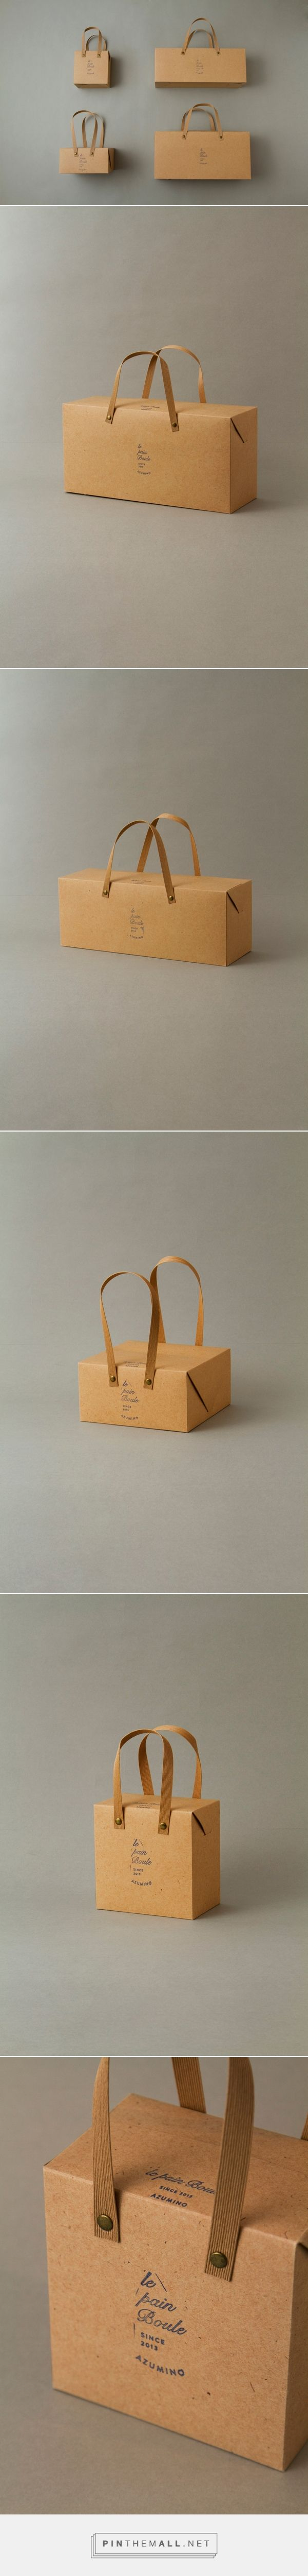 Artless Inc. le pain boule new gift box packaging curated by Packaging Diva PD                                                                                                                                                                                 More